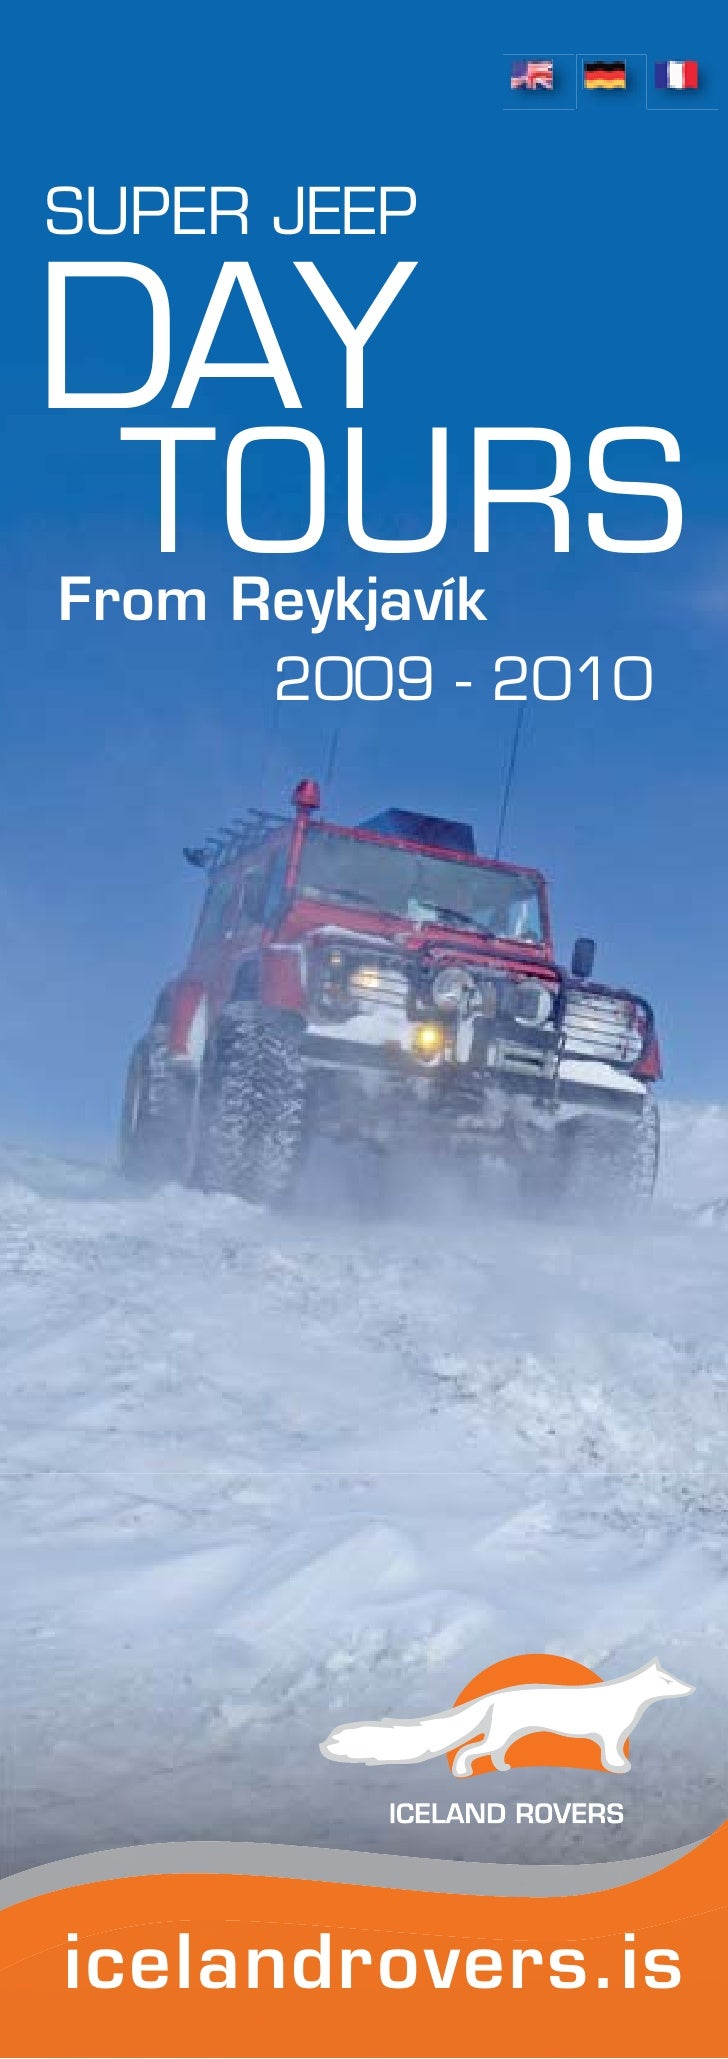 SUPER JEEP  DAY   TOURS From Reykjavík       2009 - 2010     icelandrovers.is